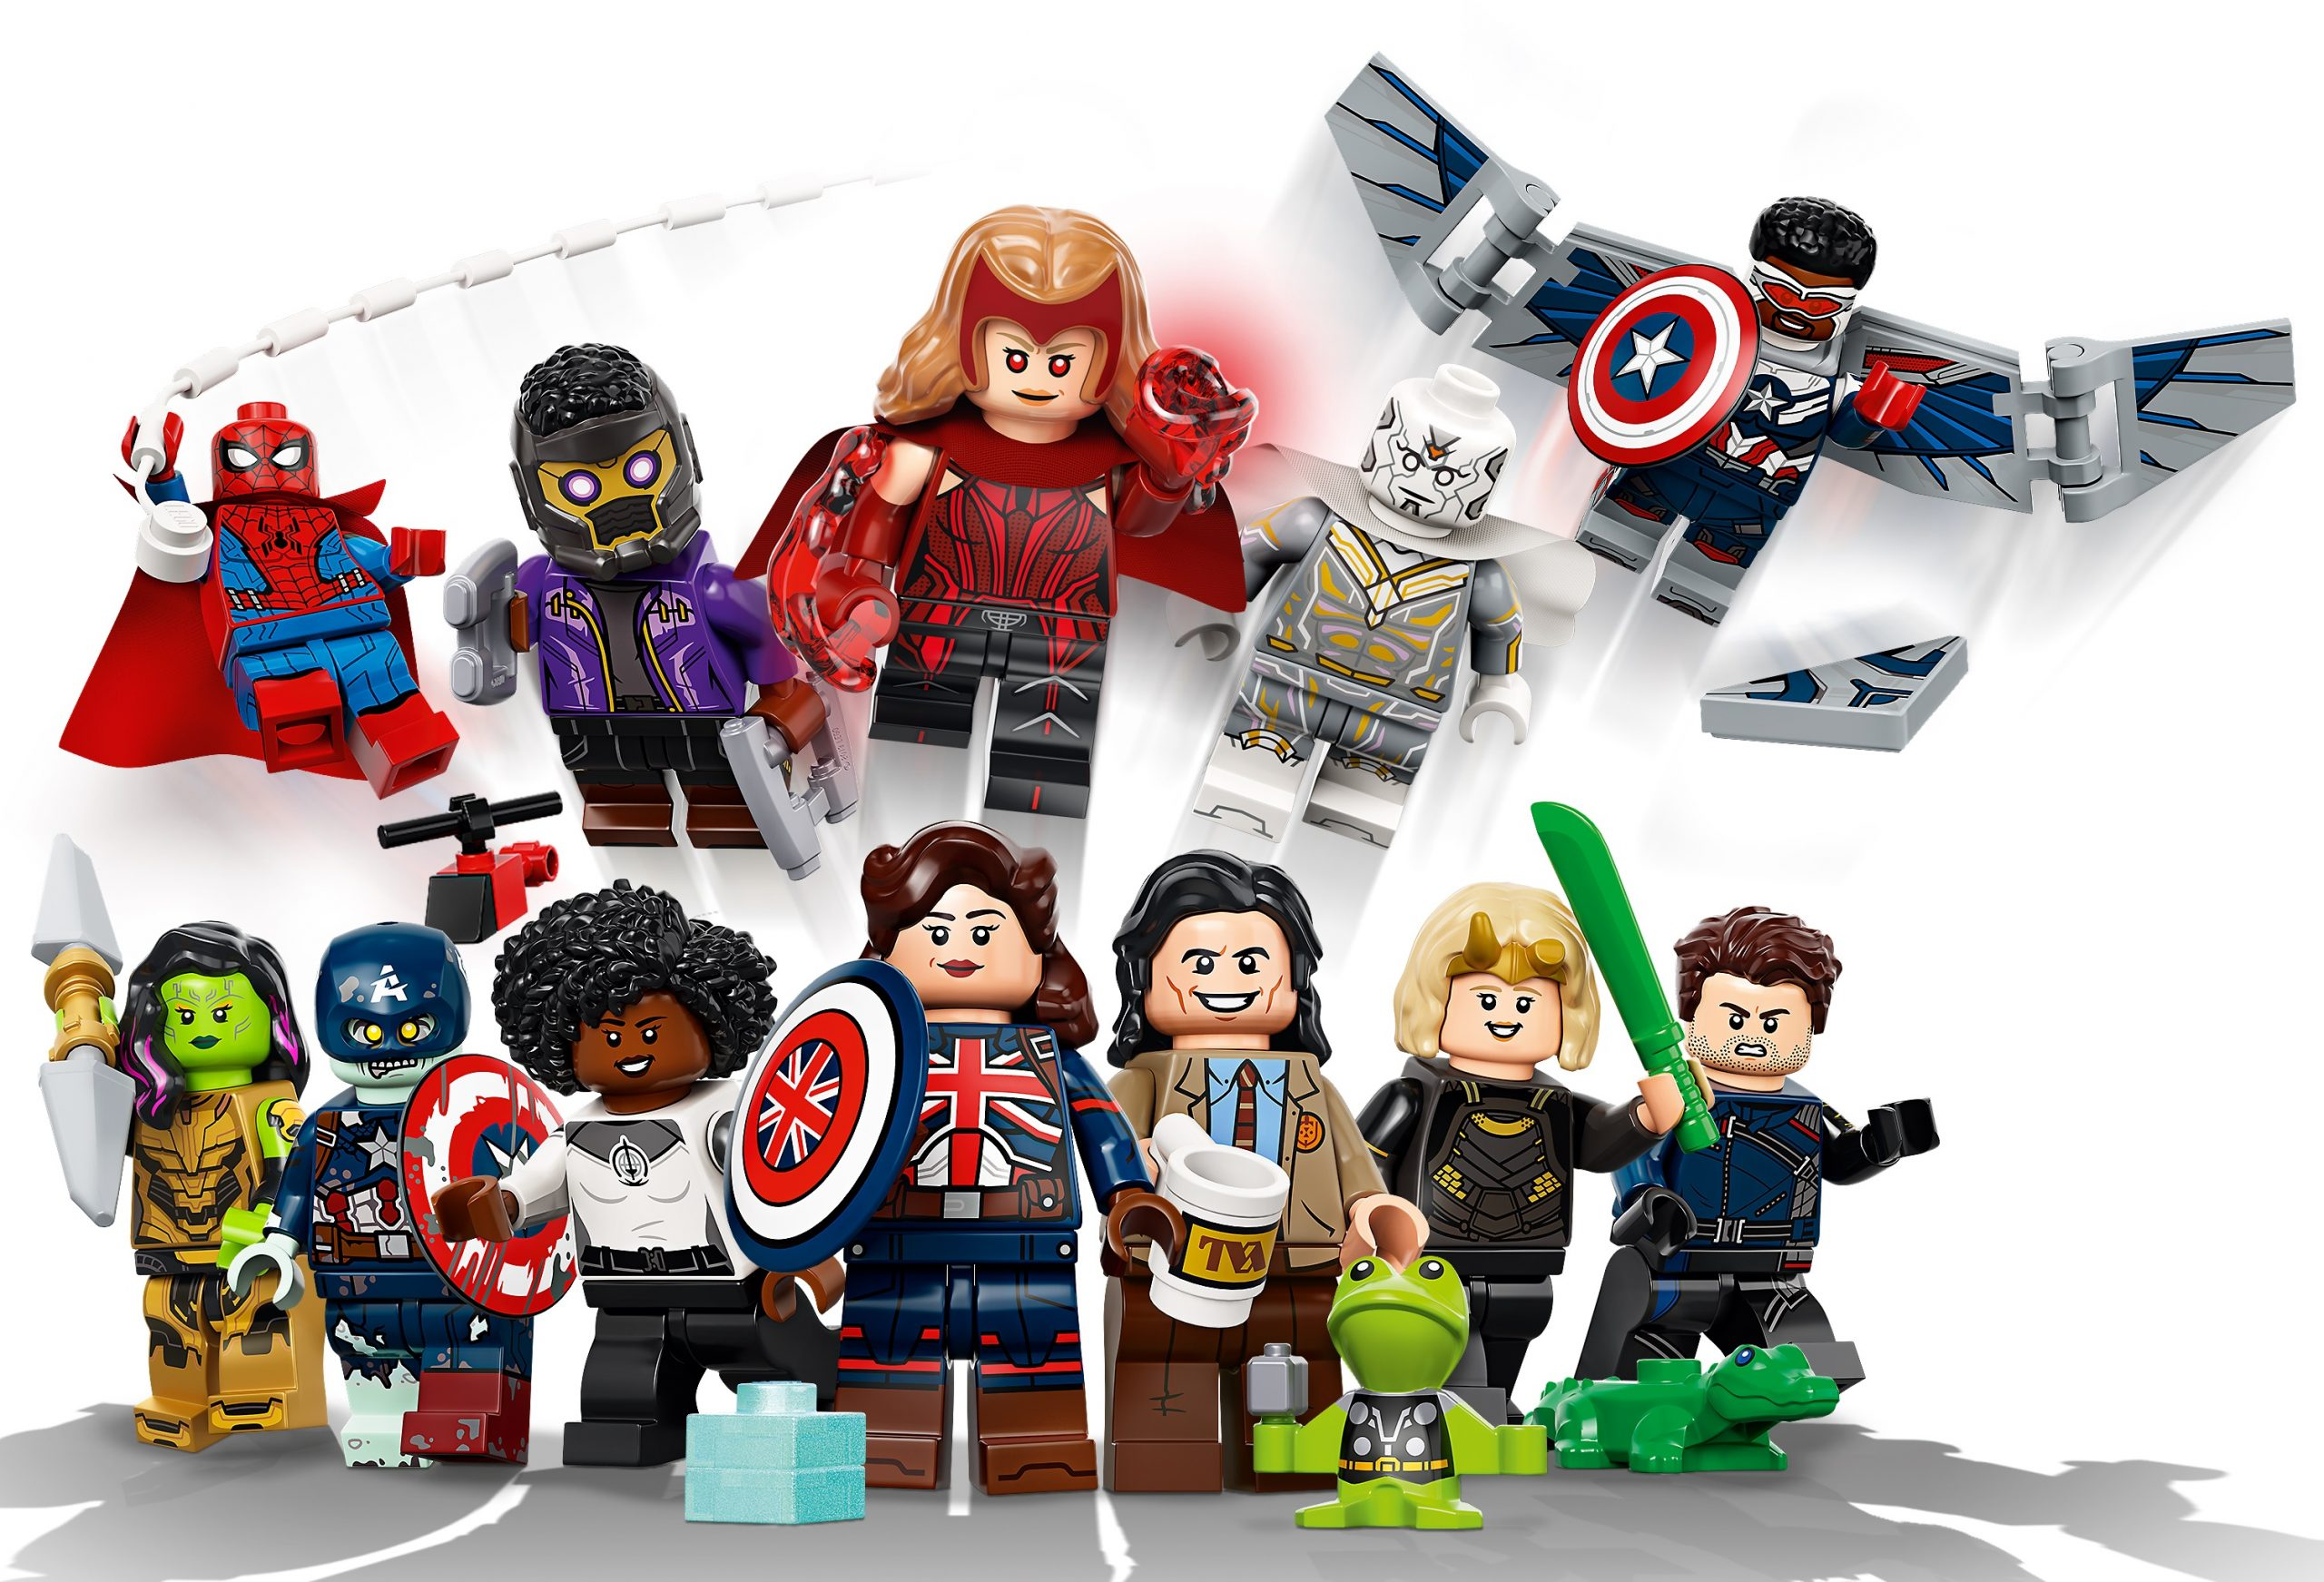 New Lego Marvel Disney Series Minifigure Collection Coming Soon What S On Disney Plus